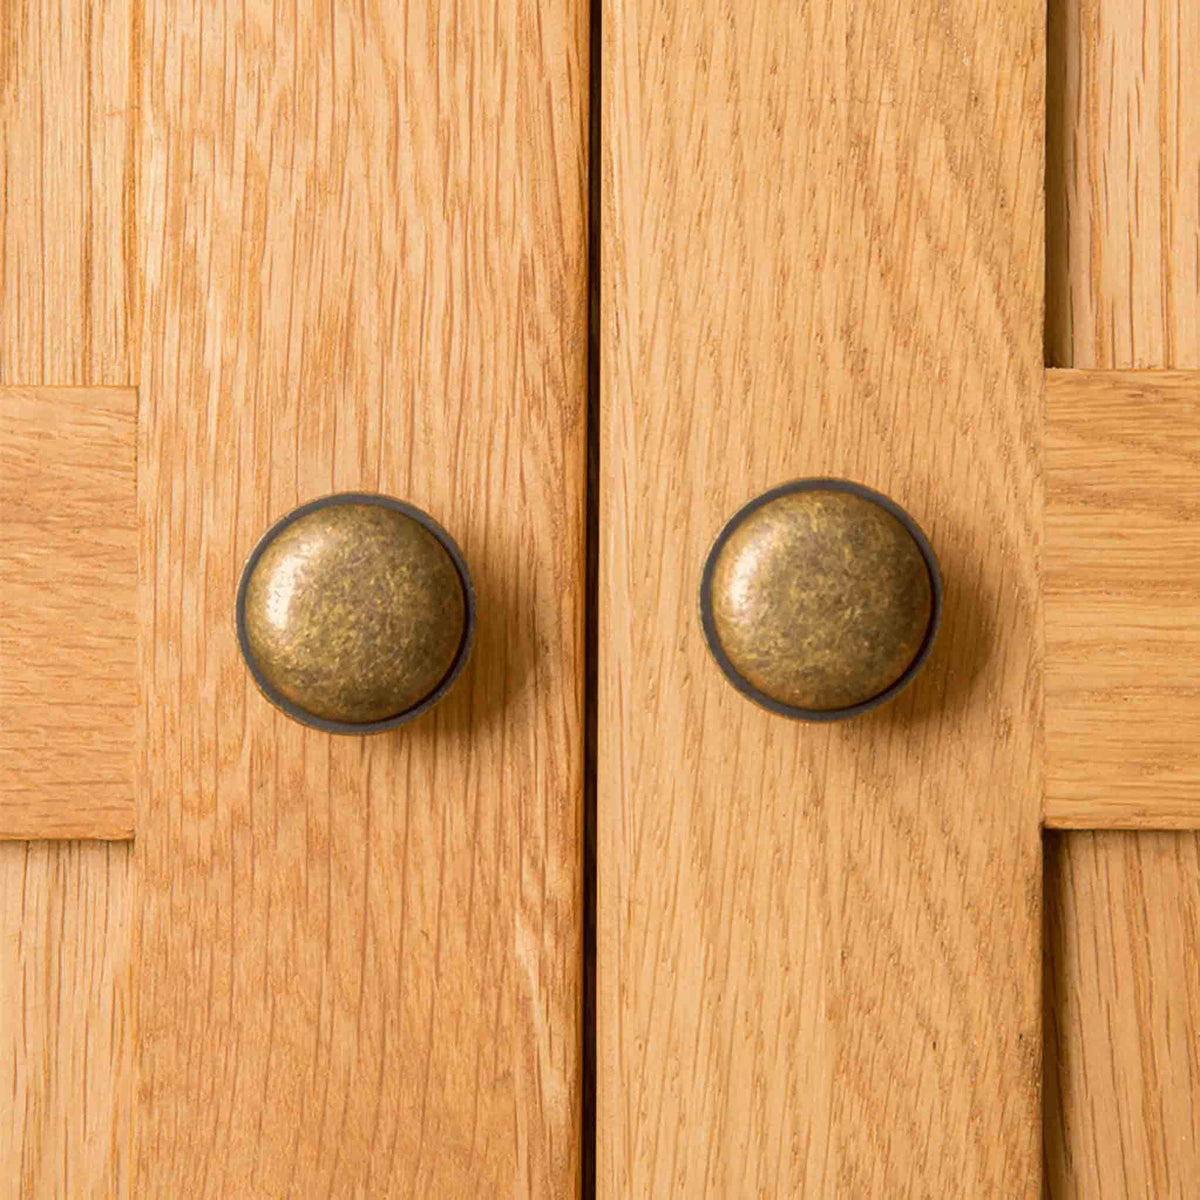 Door handles of Roseland Oak Double Wardrobe & Drawers